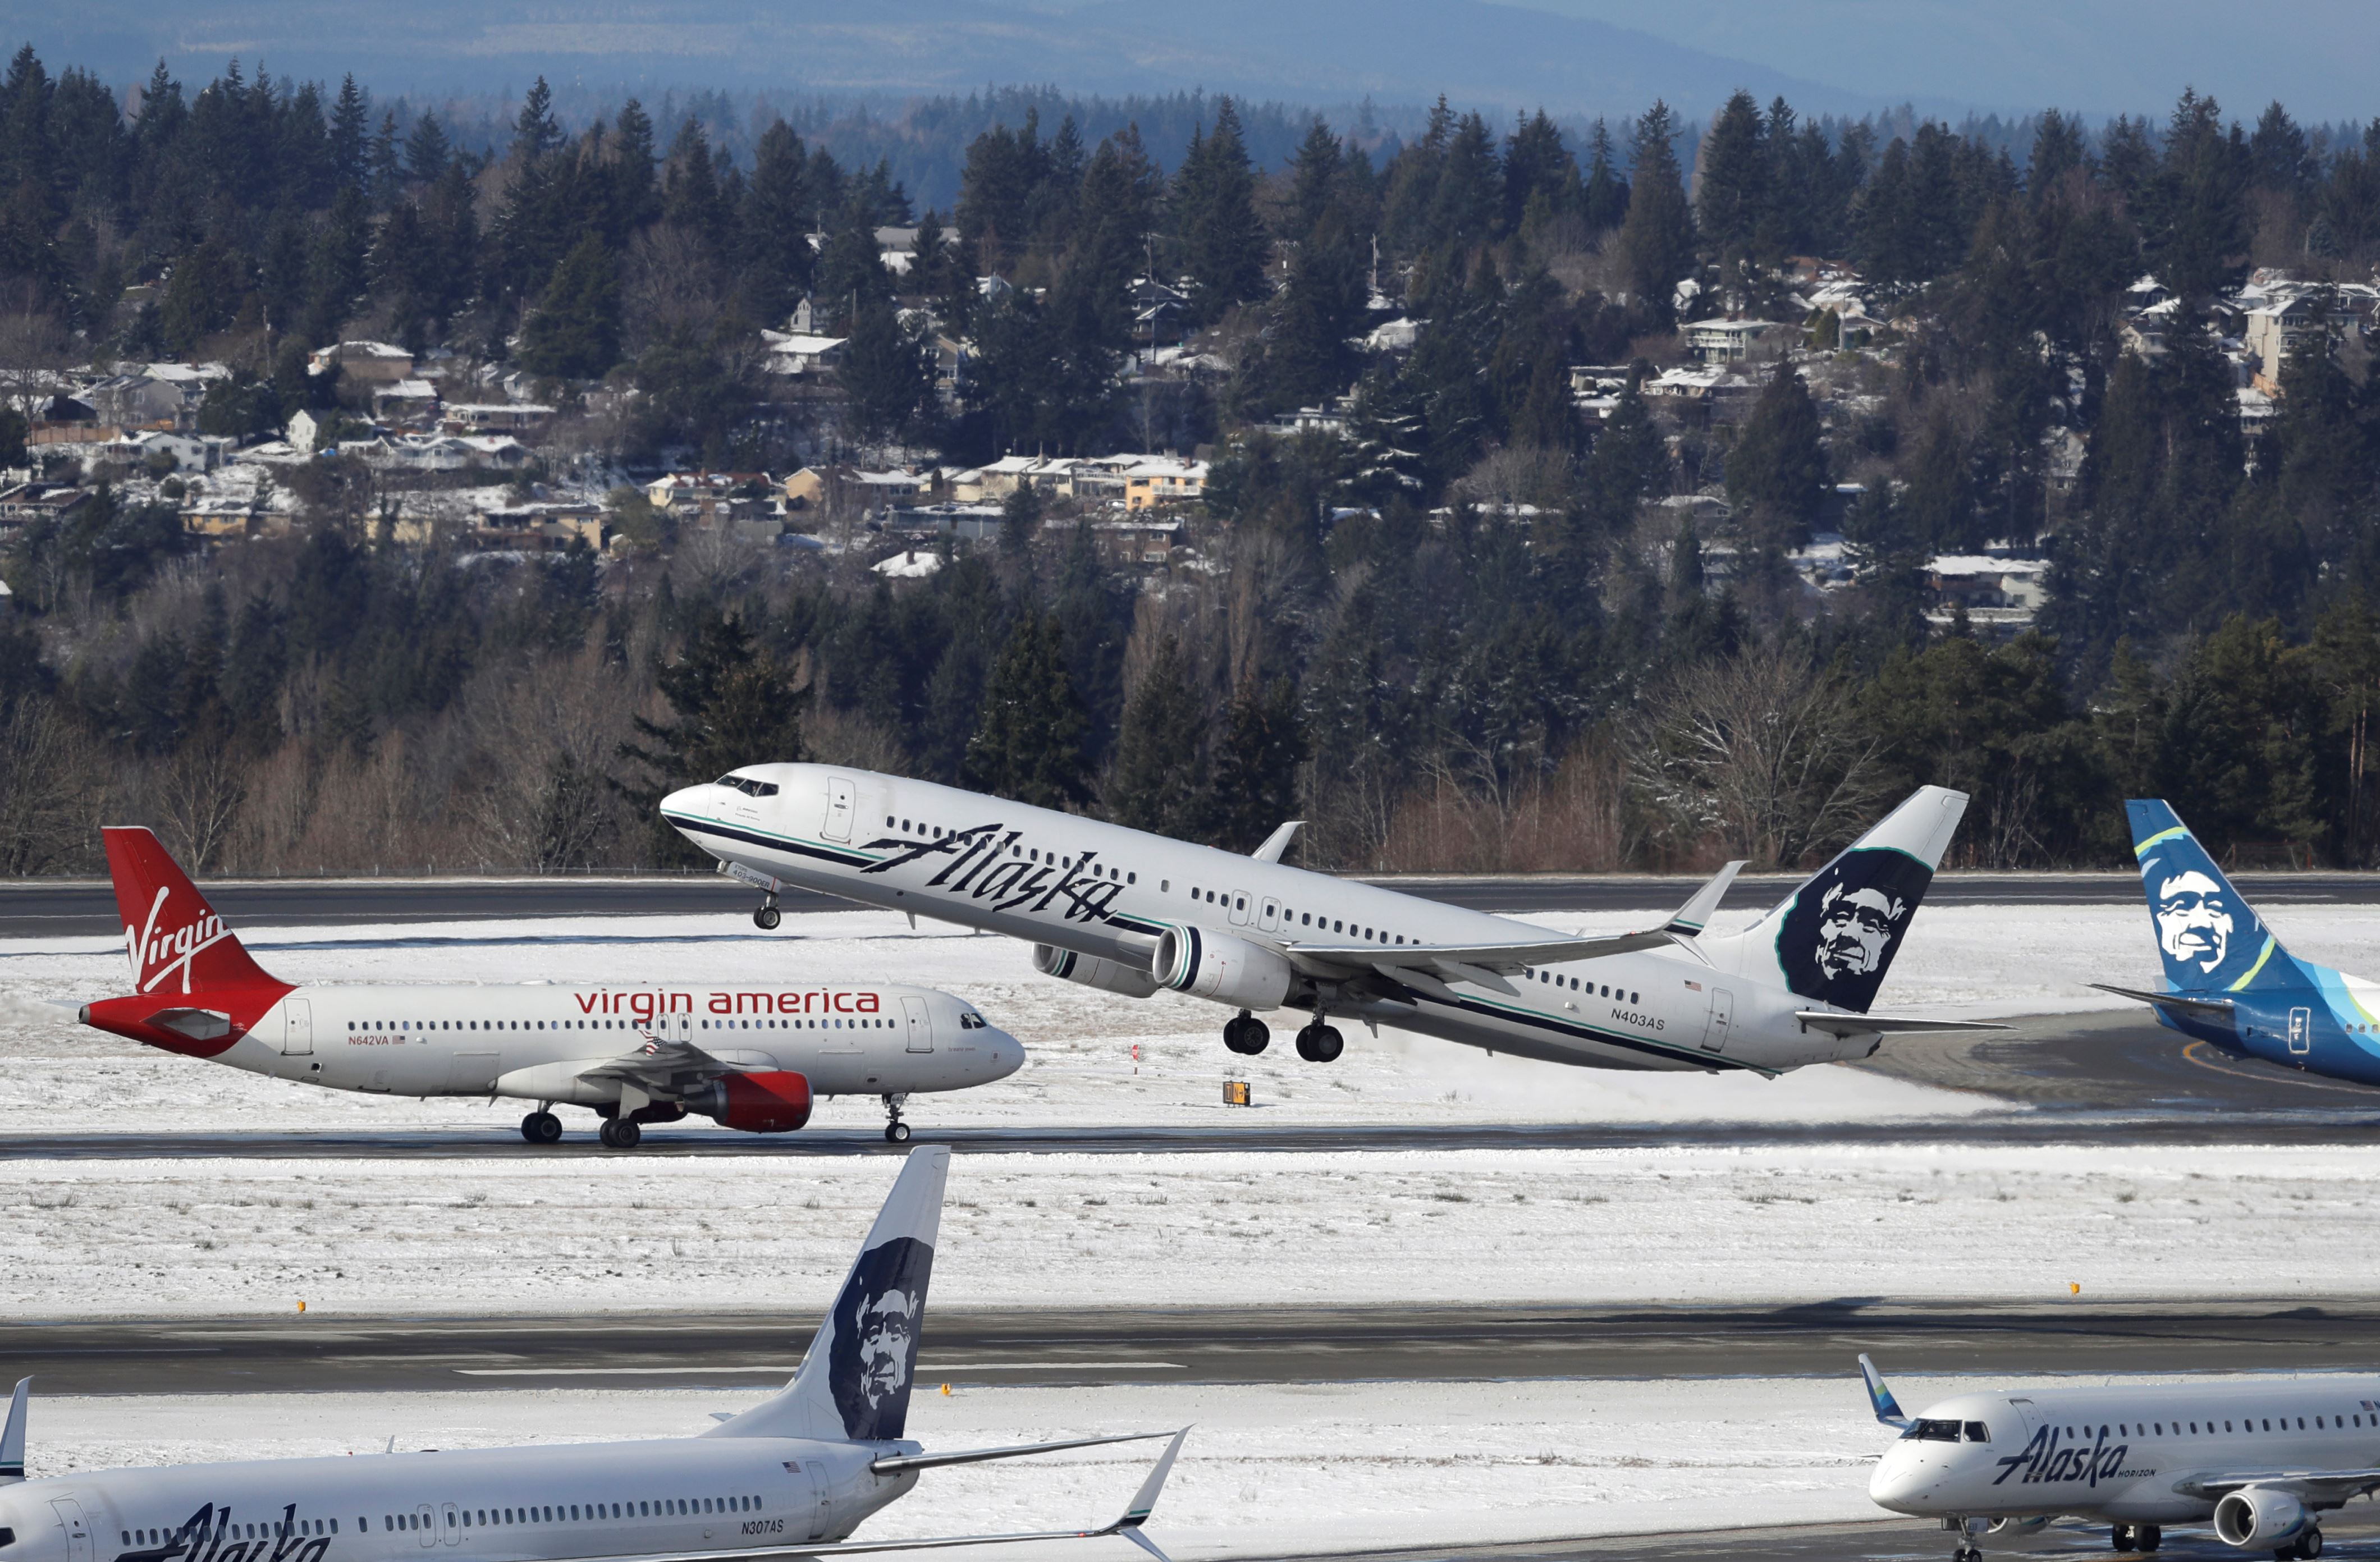 An Alaska Airlines plane takes off above a taxiing Virgin America plane, Tuesday, Feb. 5, 2019, on a snow-bordered runway at Seattle-Tacoma International Airport in Seattle. (AP Photo/Ted S. Warren)